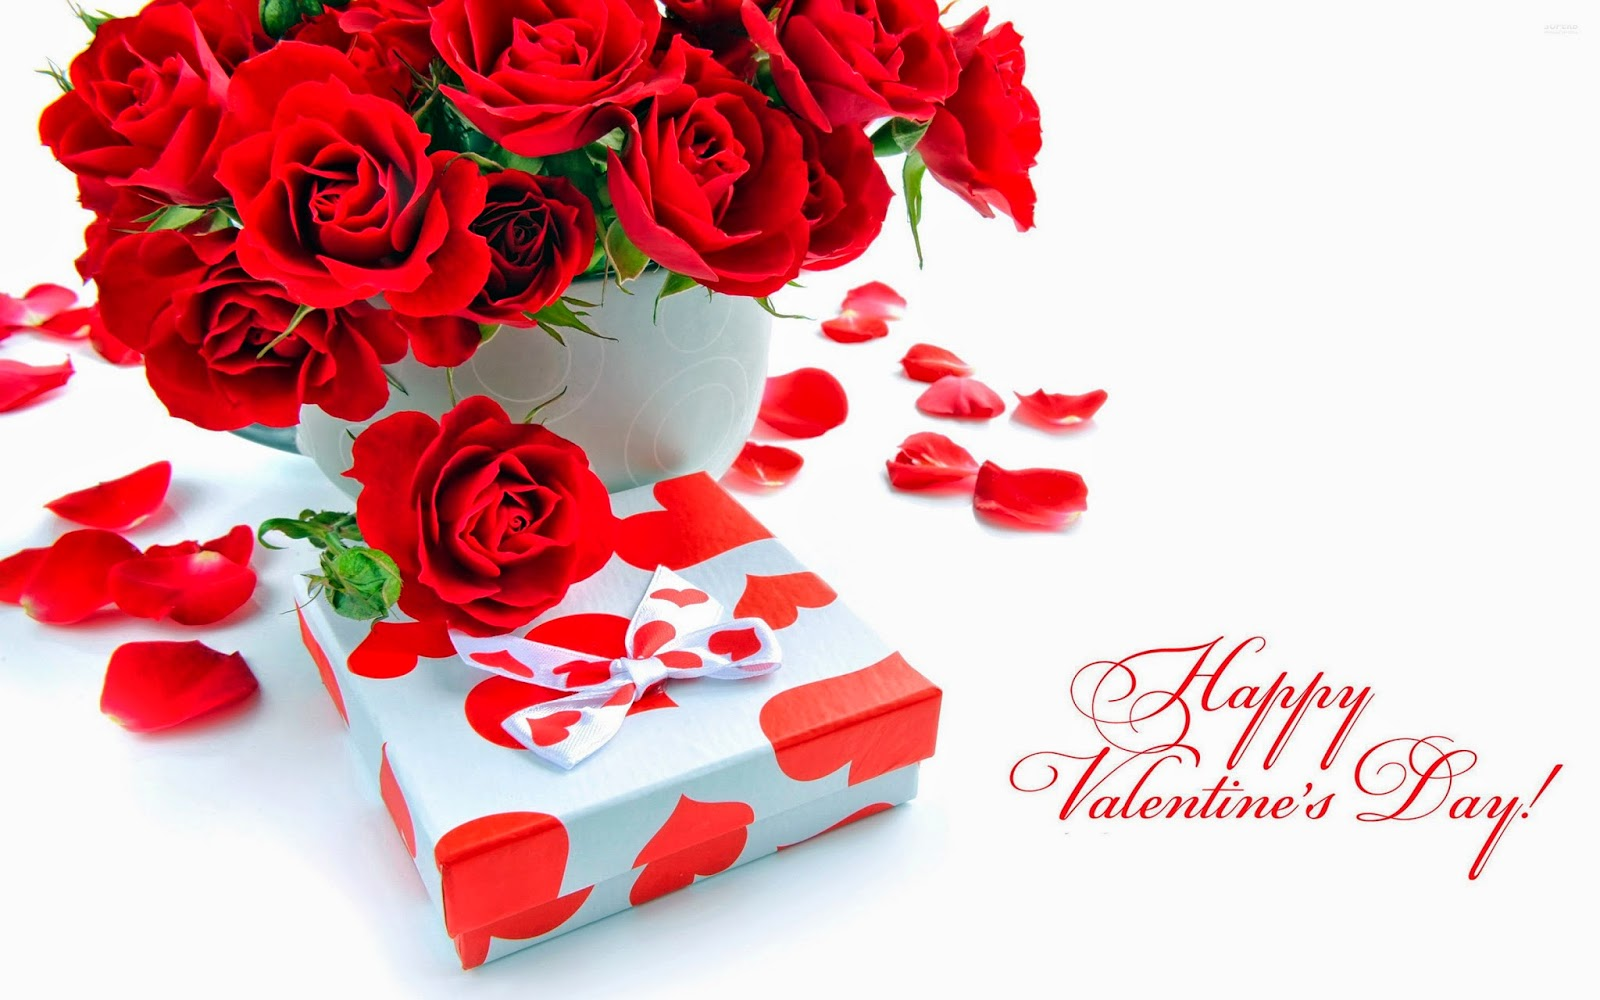 Happy Valentines Day 2016 Wishes Greetings Quotes Sms